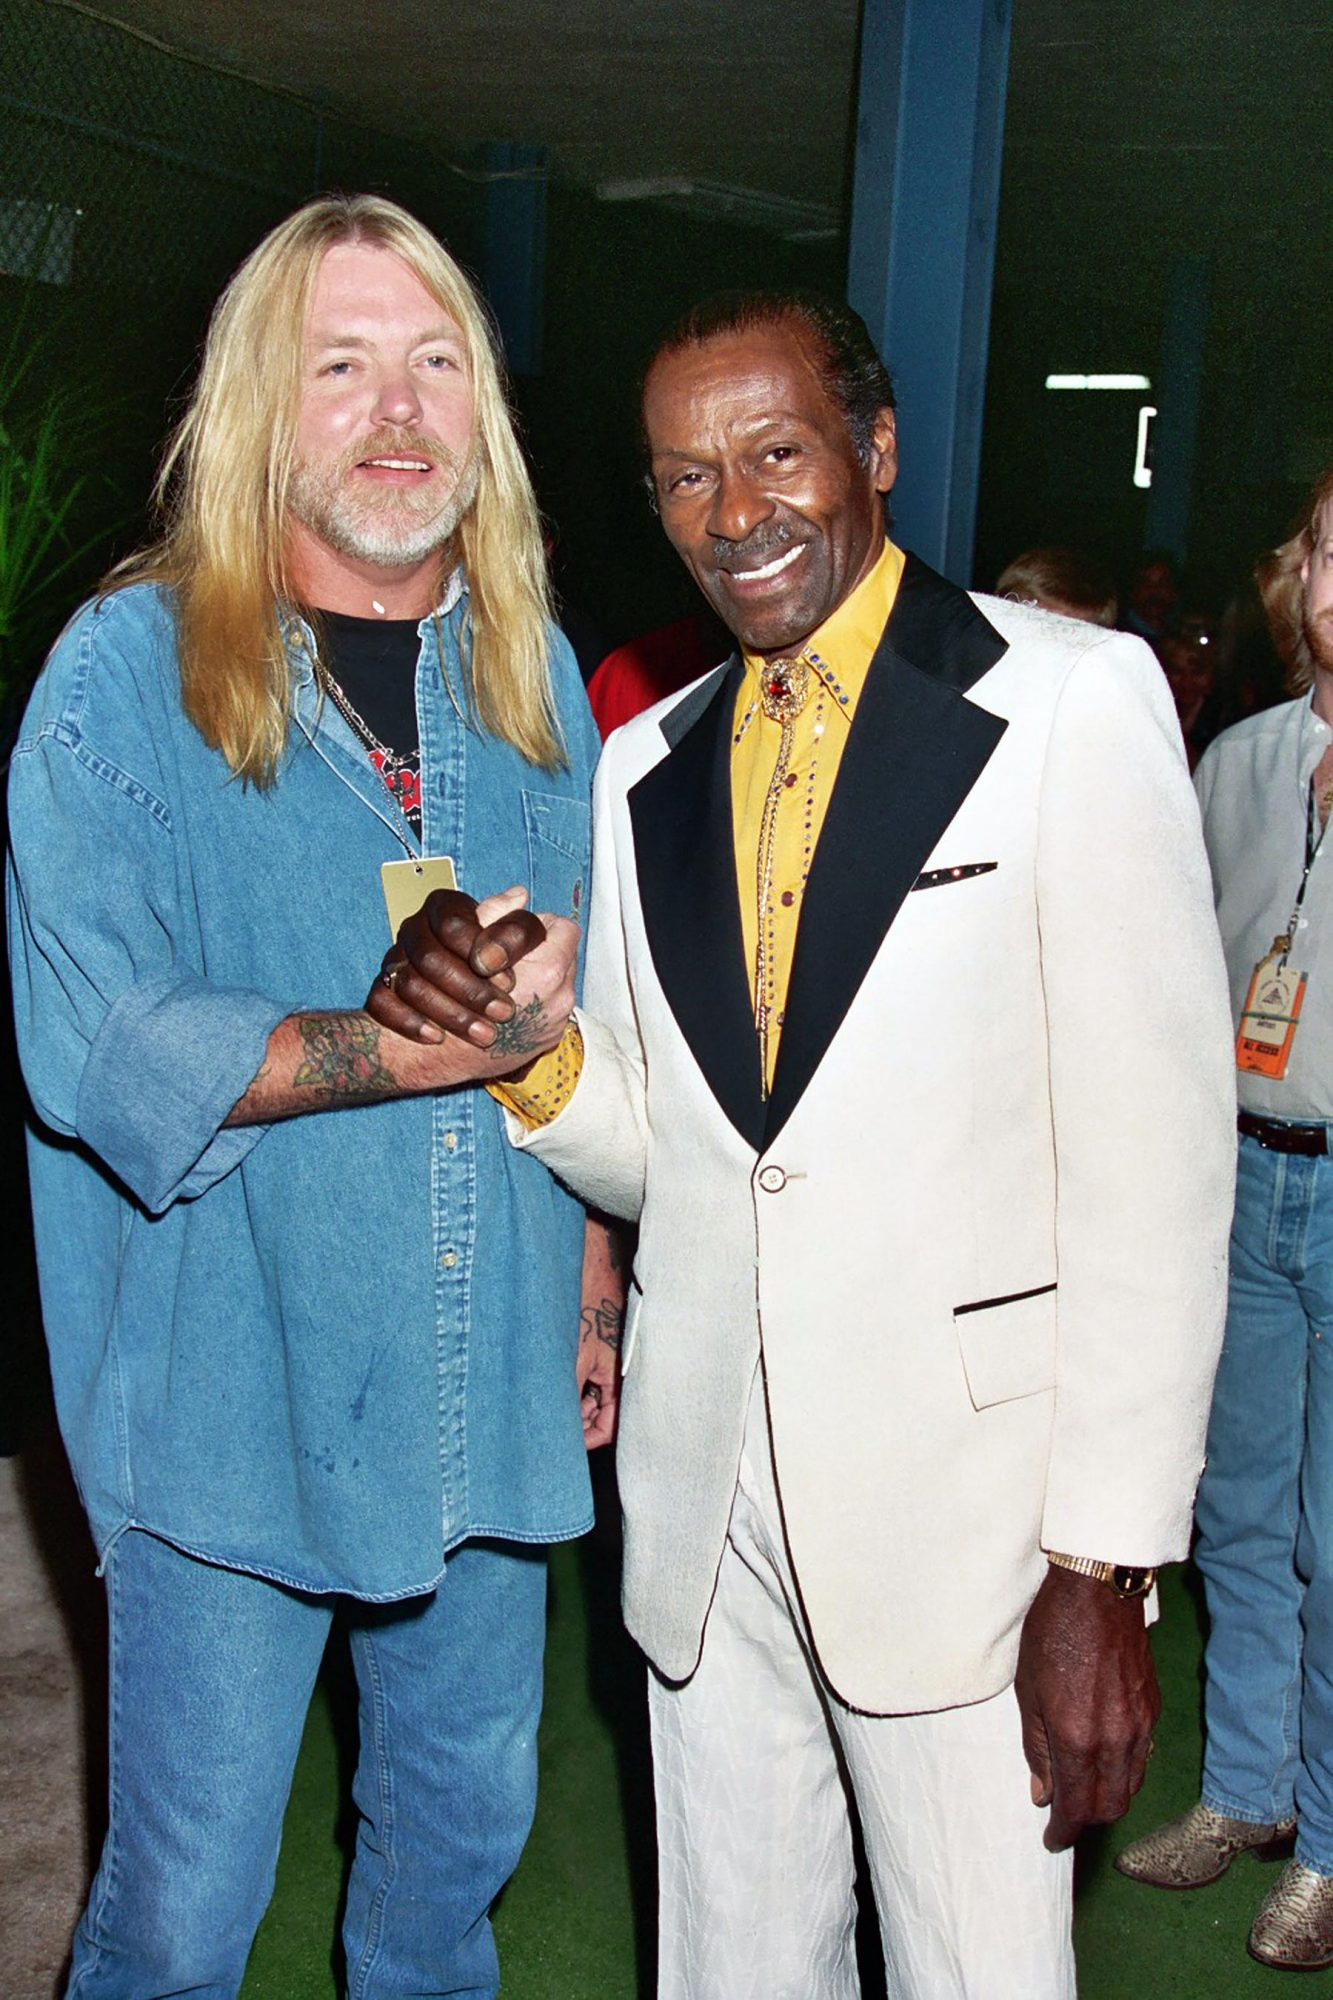 Grand Opening of Rock and Roll Hall of Fame Museum in Cleveland, 1995